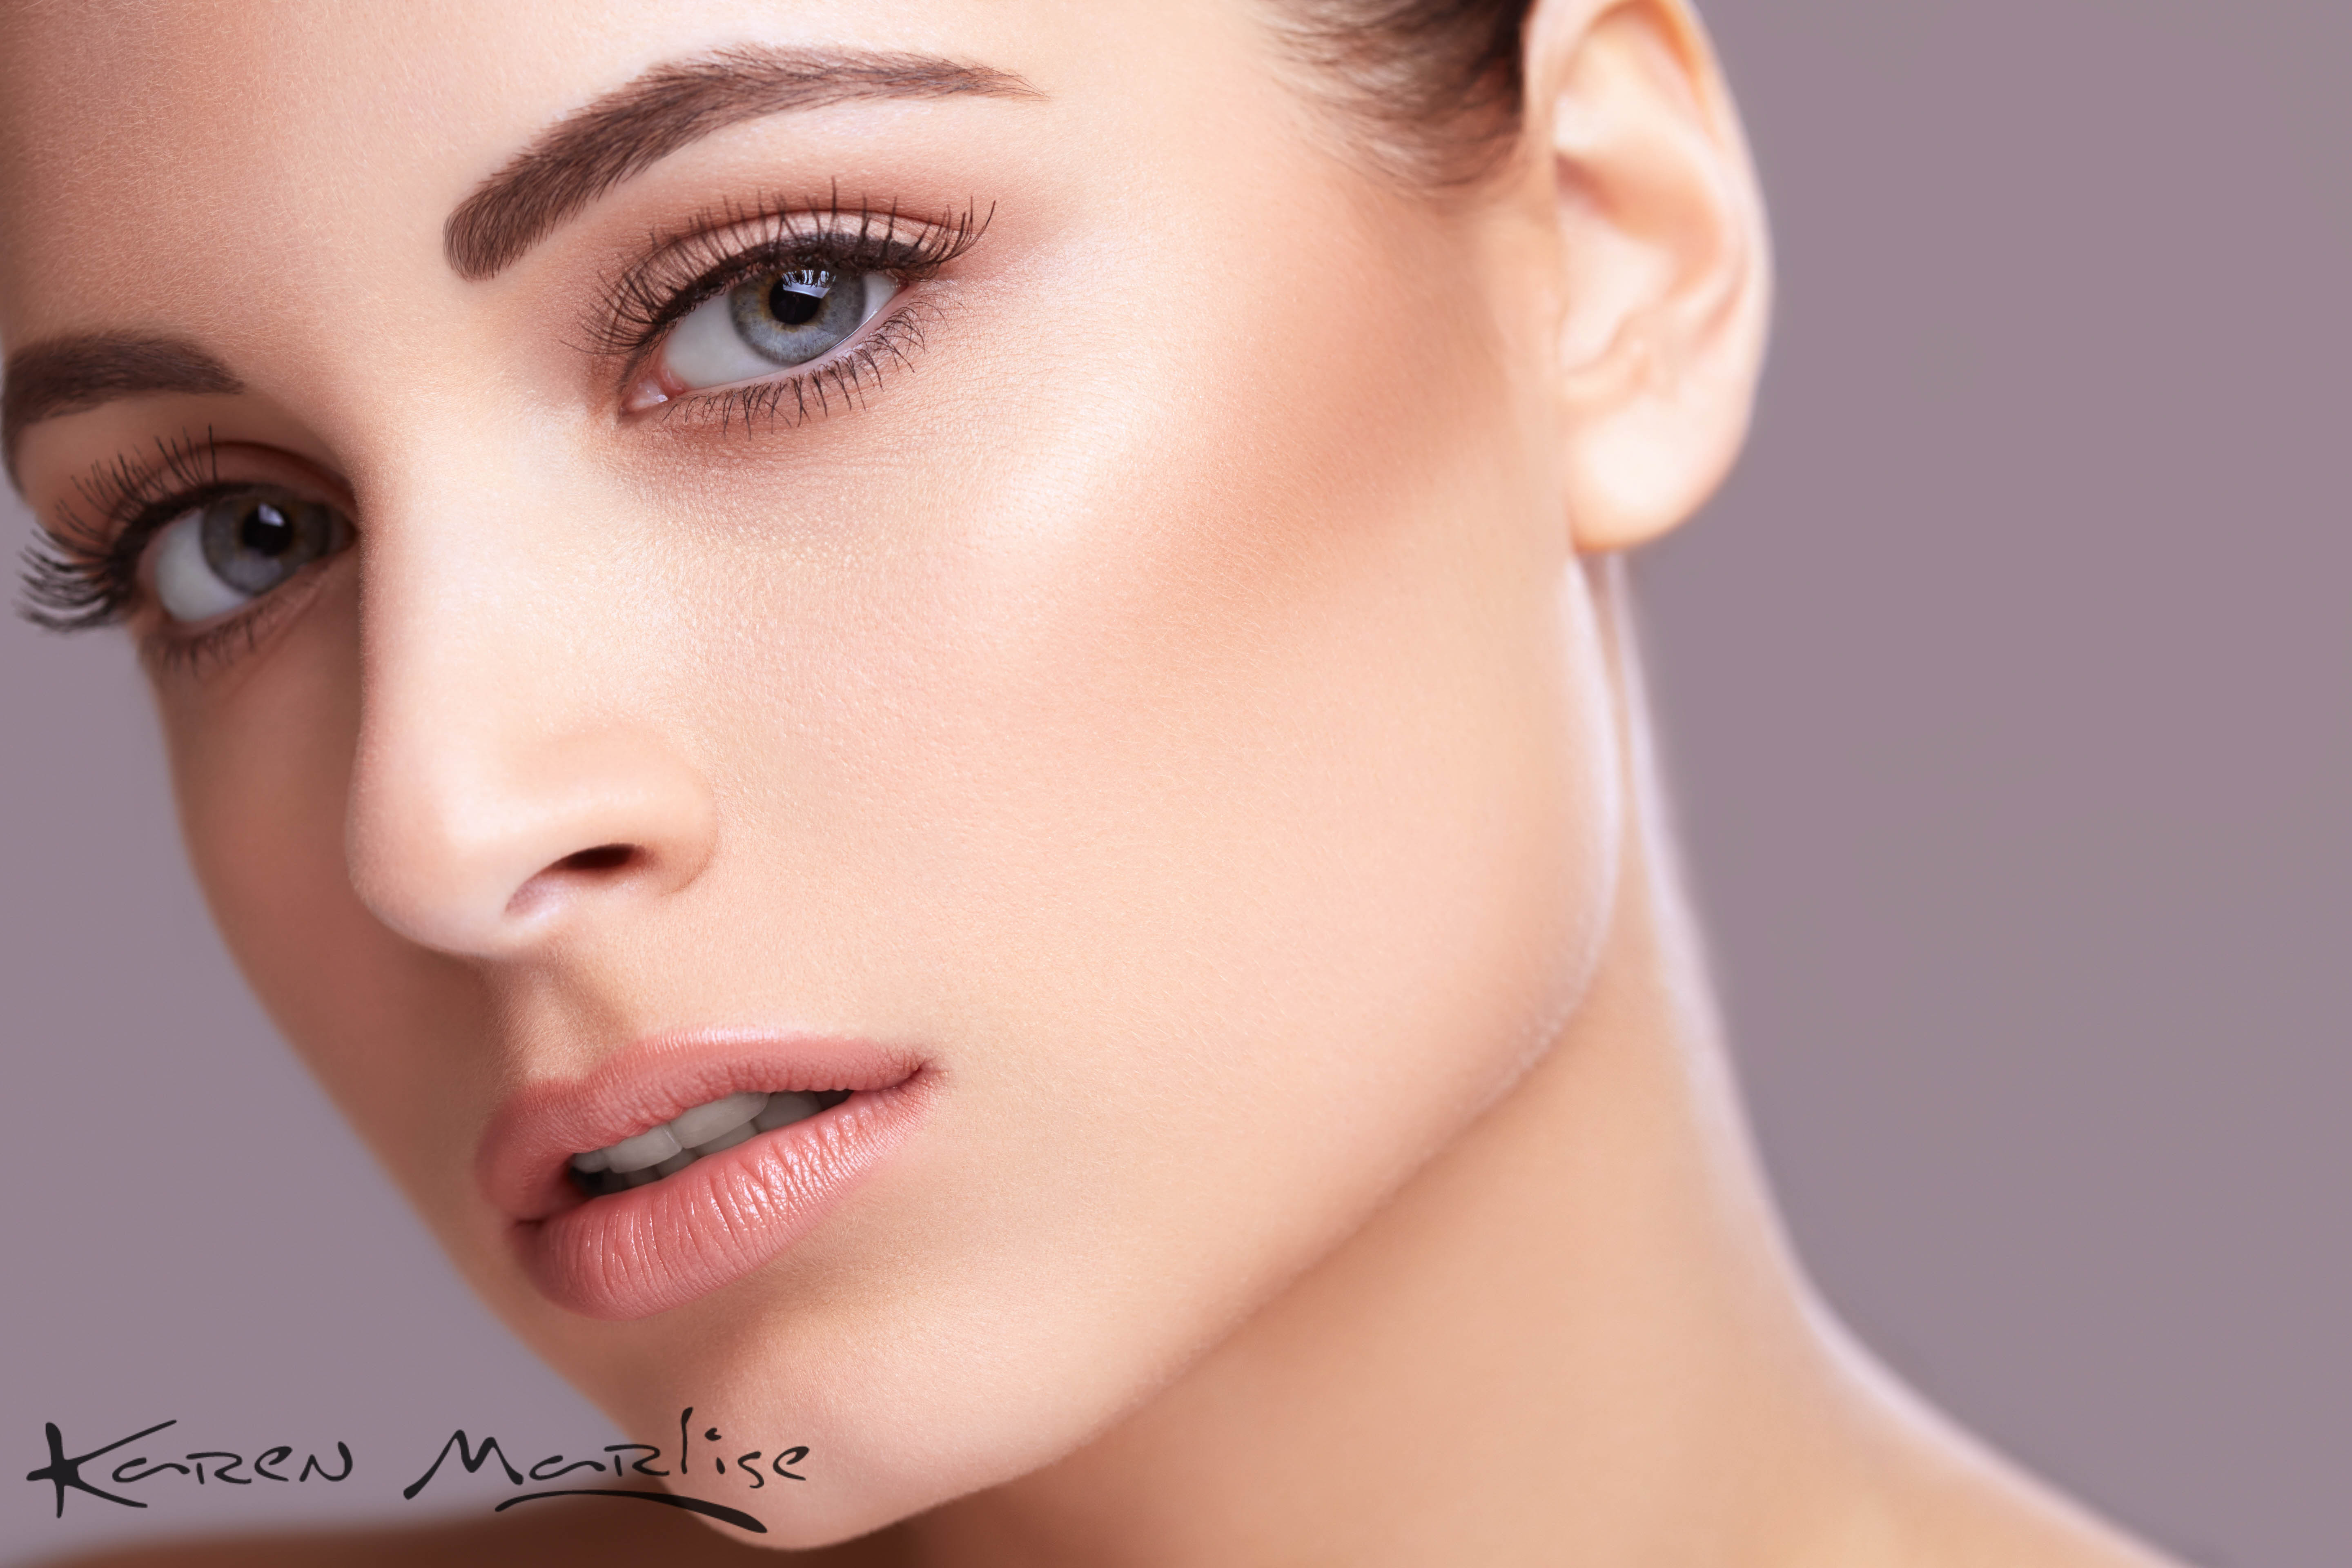 Sttes Most Affordable Laser Hair Removal Prices Tampa Bay